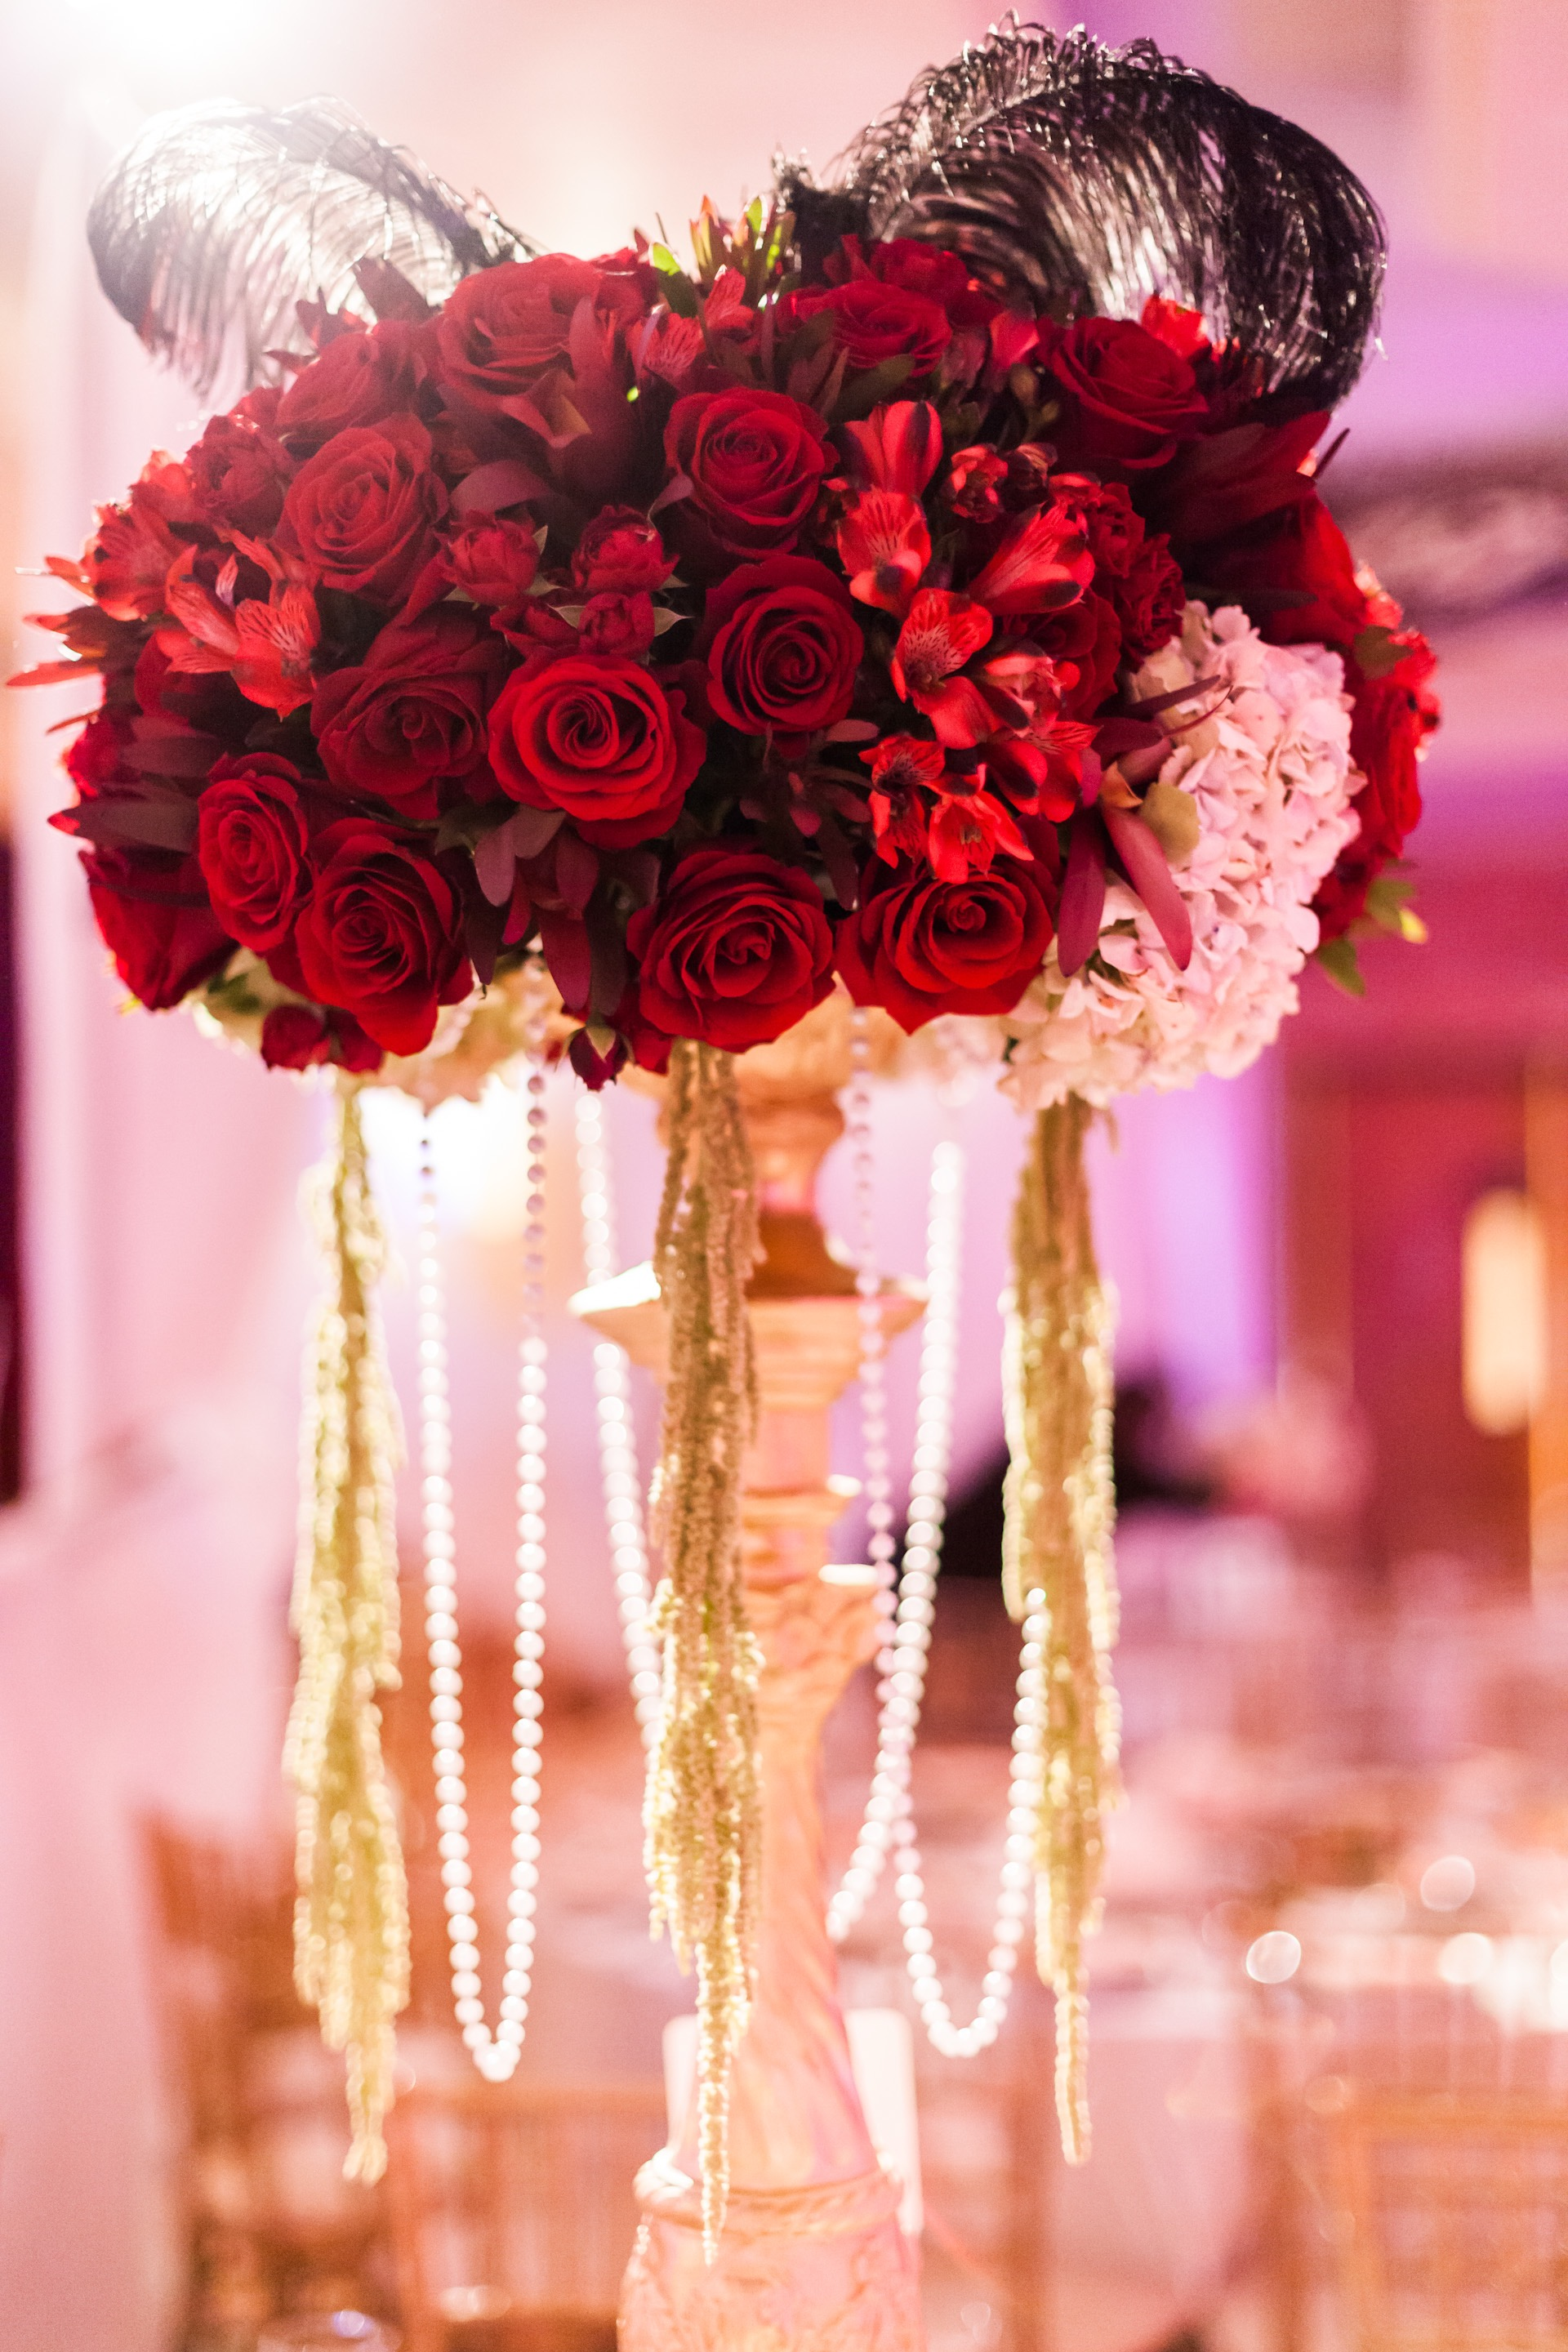 15 romantic red wedding centerpieces ideas 19319 centerpieces ideas red theme rose centerpieces for weddings image 12 of 15 junglespirit Gallery